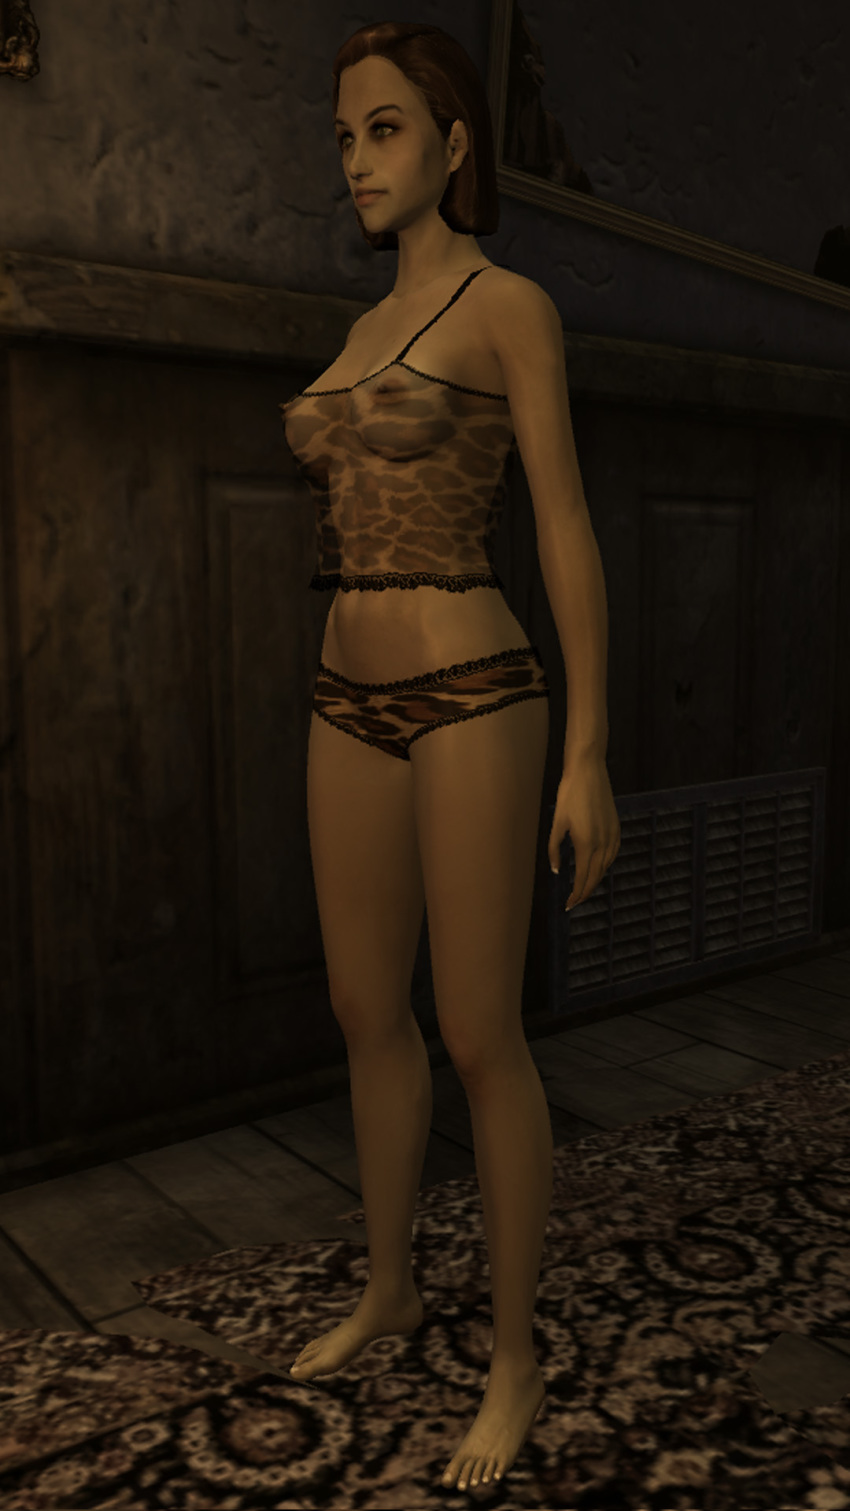 fallout new vegas where veronica is King of the hill luanne xxx